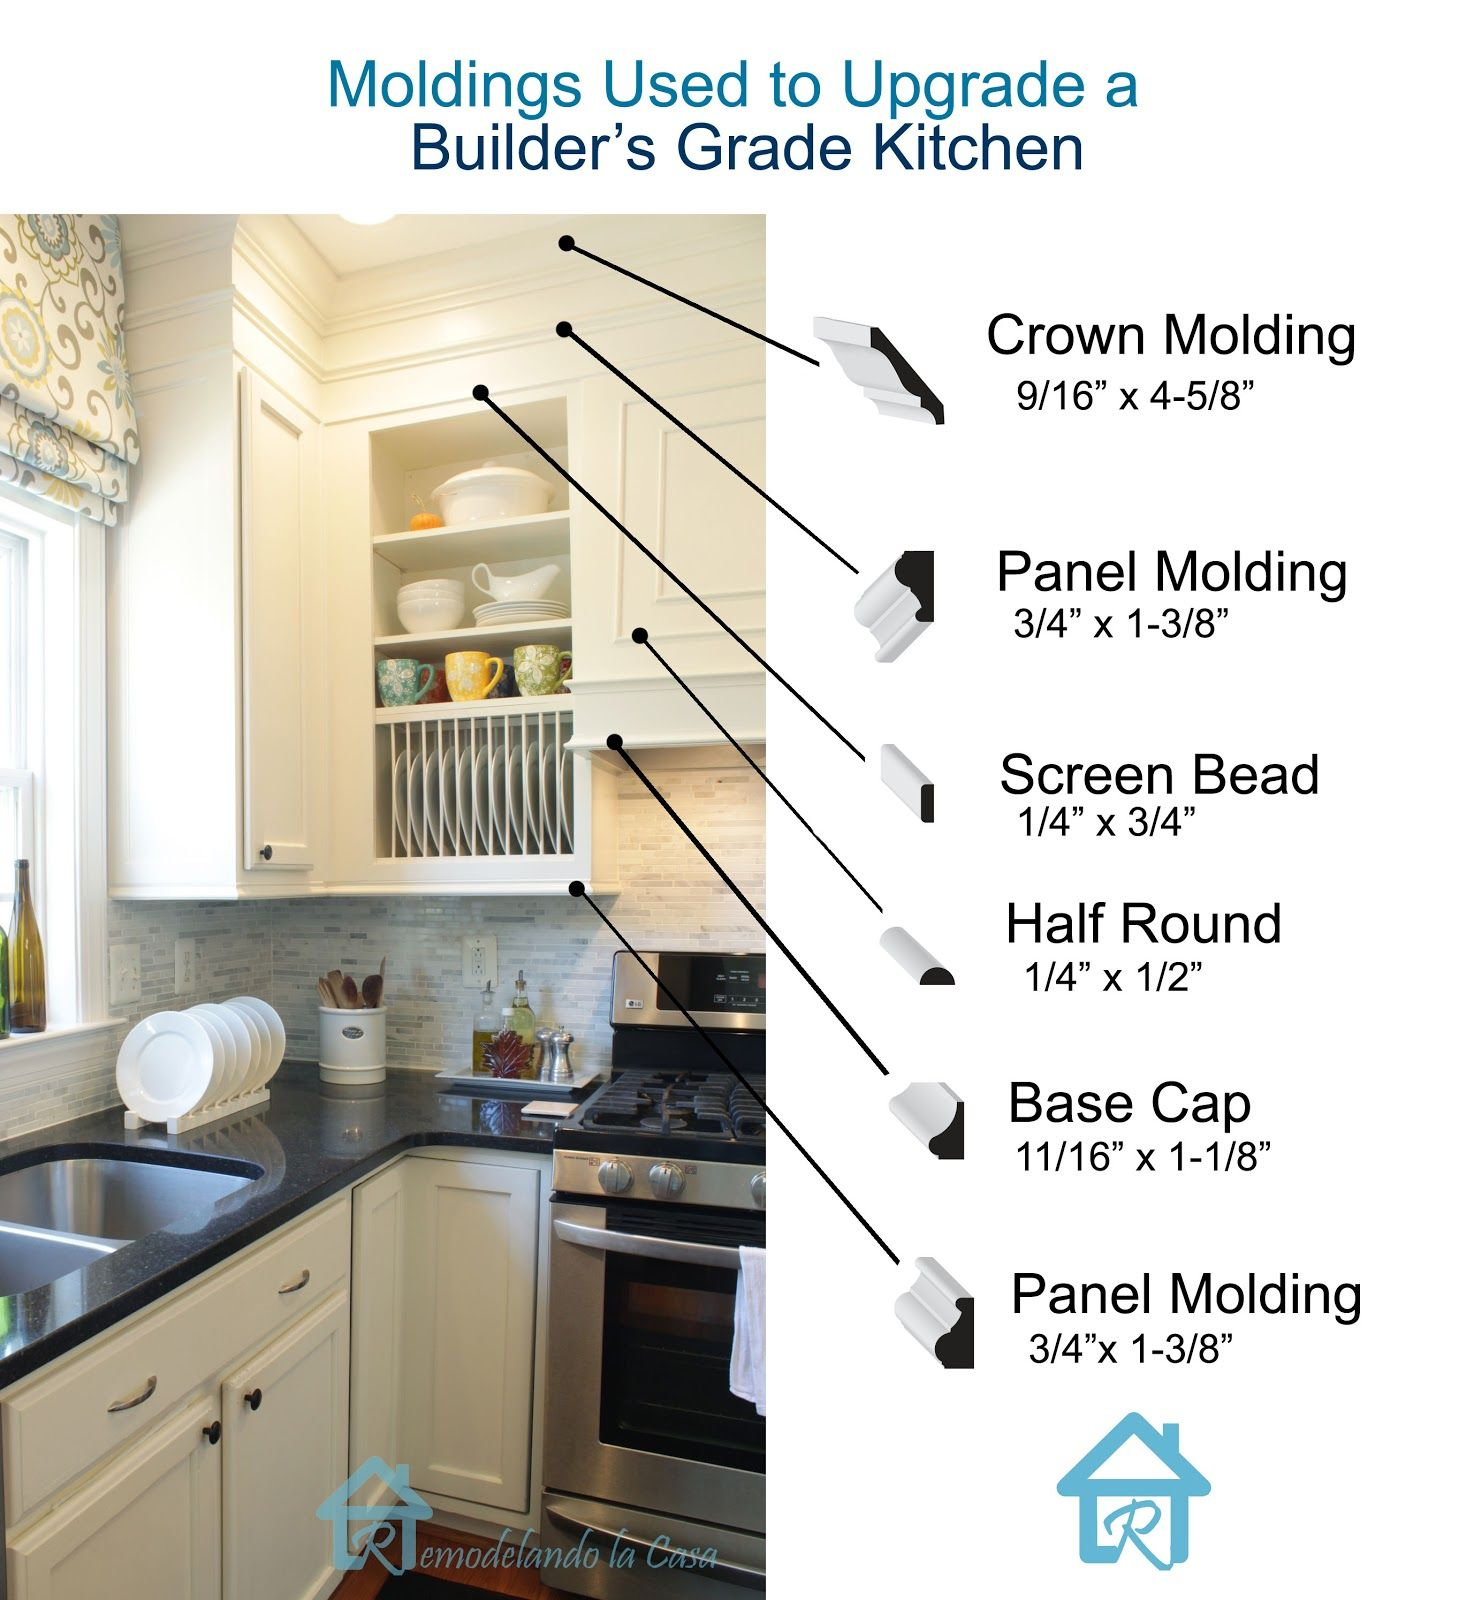 Adding Moldings To Your Kitchen Cabinets Kitchen Soffit Builder Grade Kitchen Kitchen Remodel